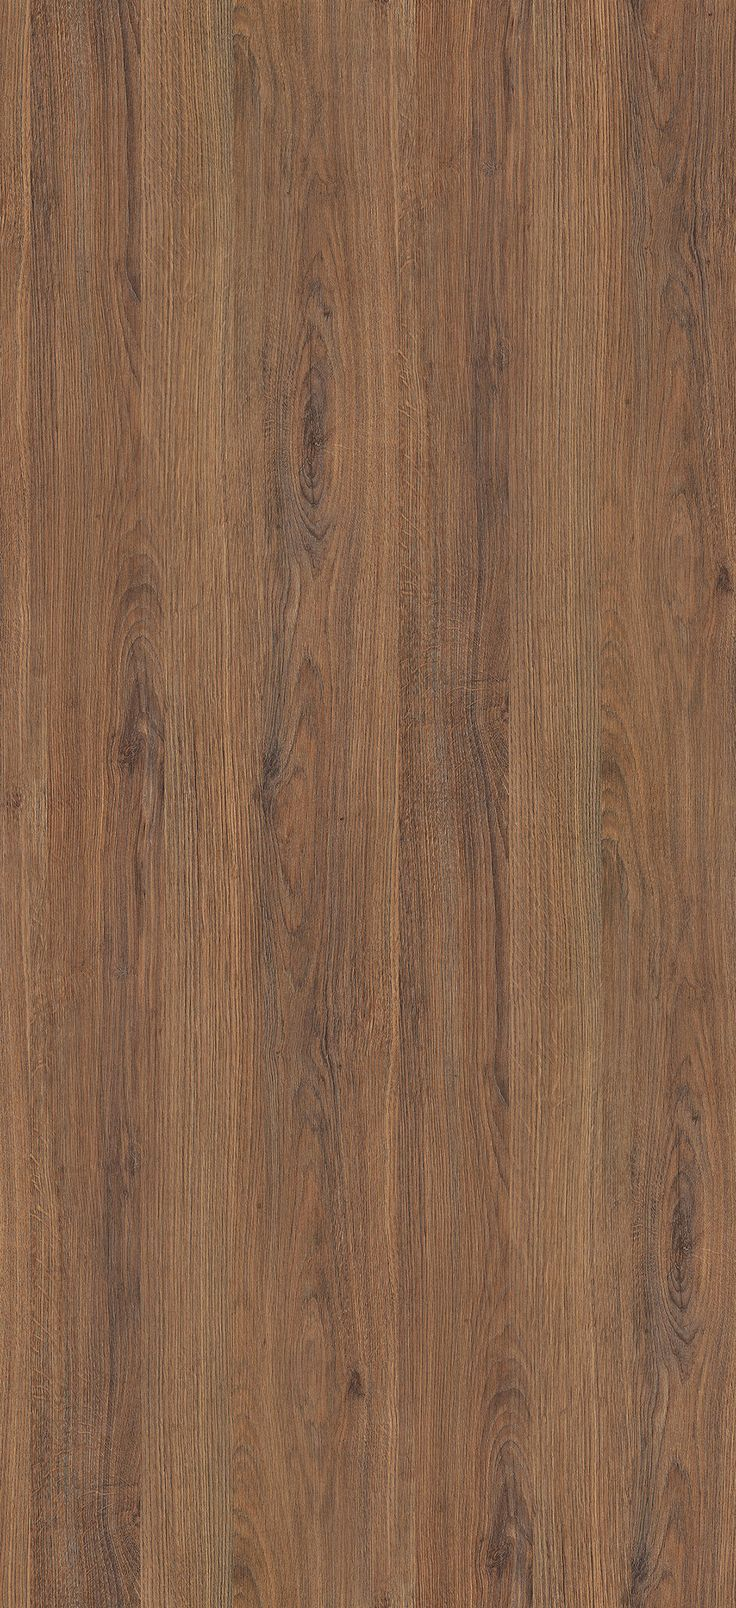 Pin By Cha Fong On Material In 2019 Walnut Wood Texture